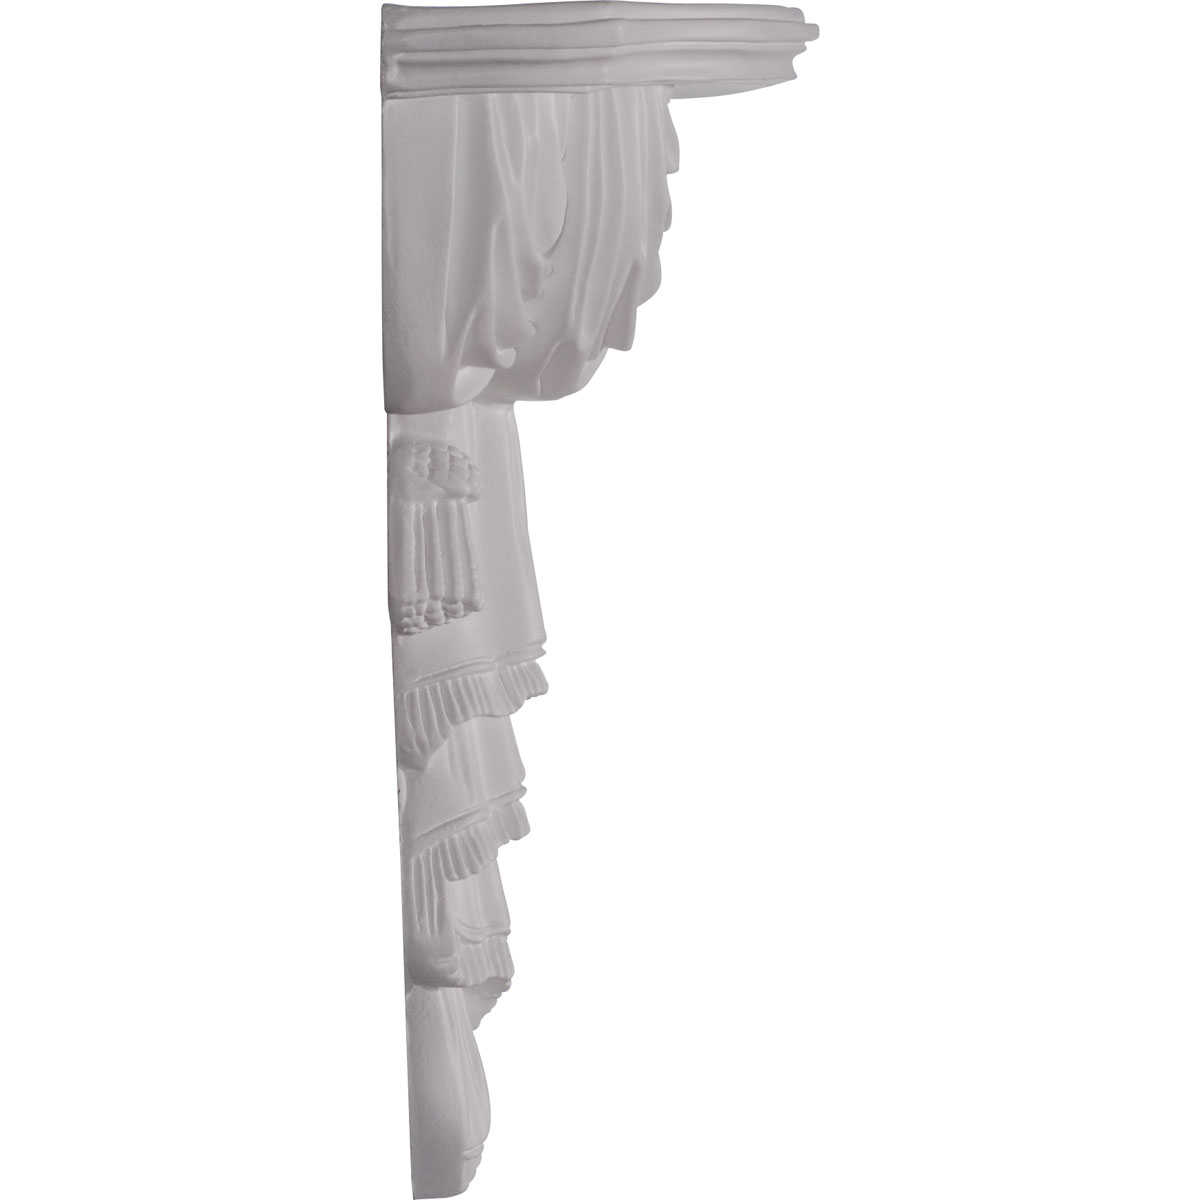 Ekena Millwork Tassel and Ribbon 12 1/8''H x 9 3/4''W x 4 1/2''D Shelf